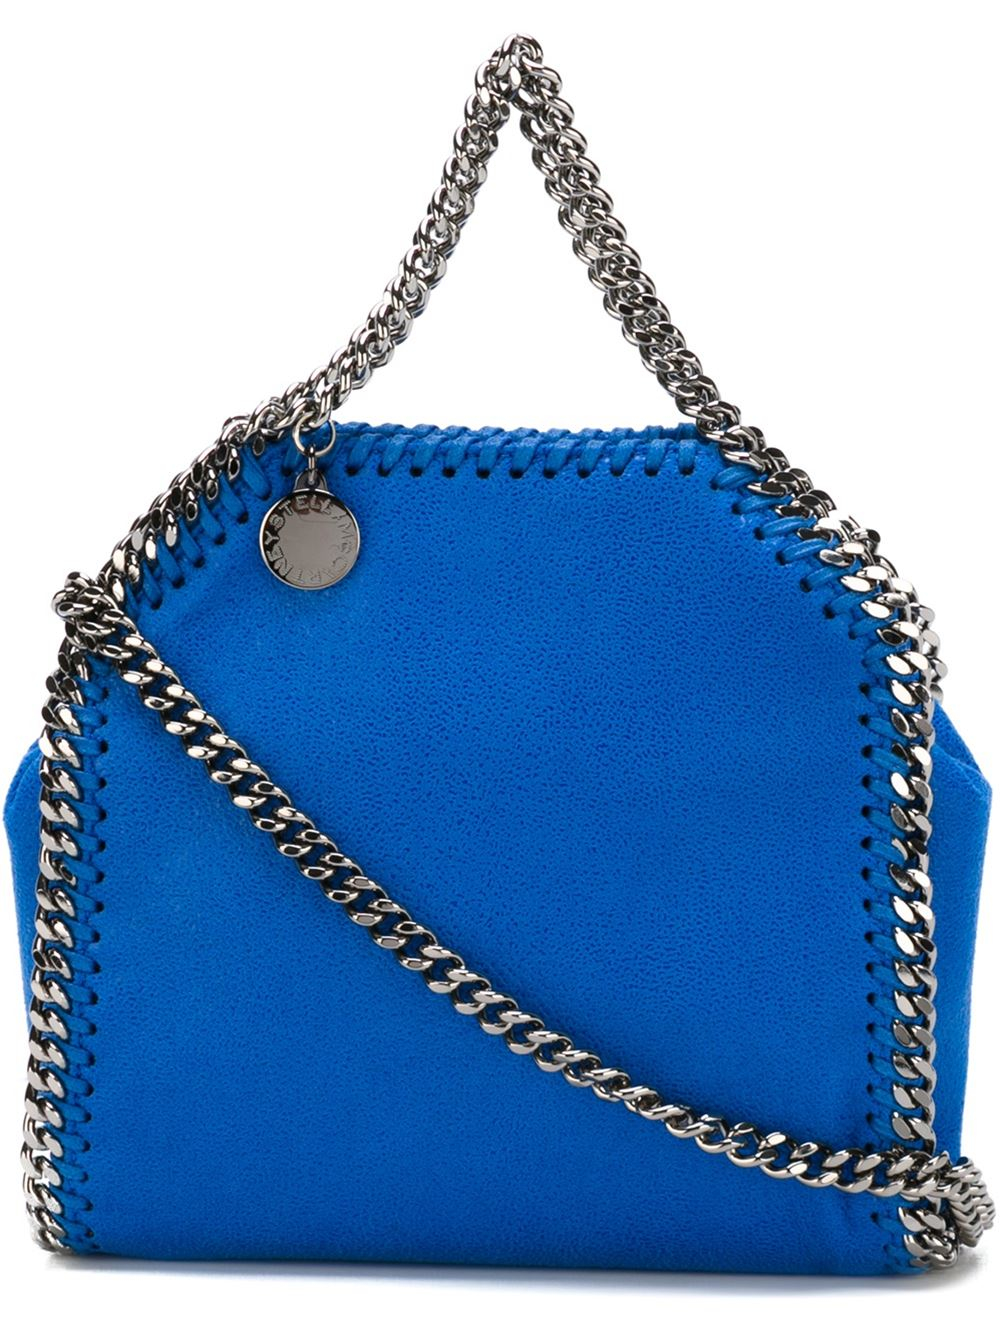 stella mccartney small 39 falabella 39 tote in blue lyst. Black Bedroom Furniture Sets. Home Design Ideas